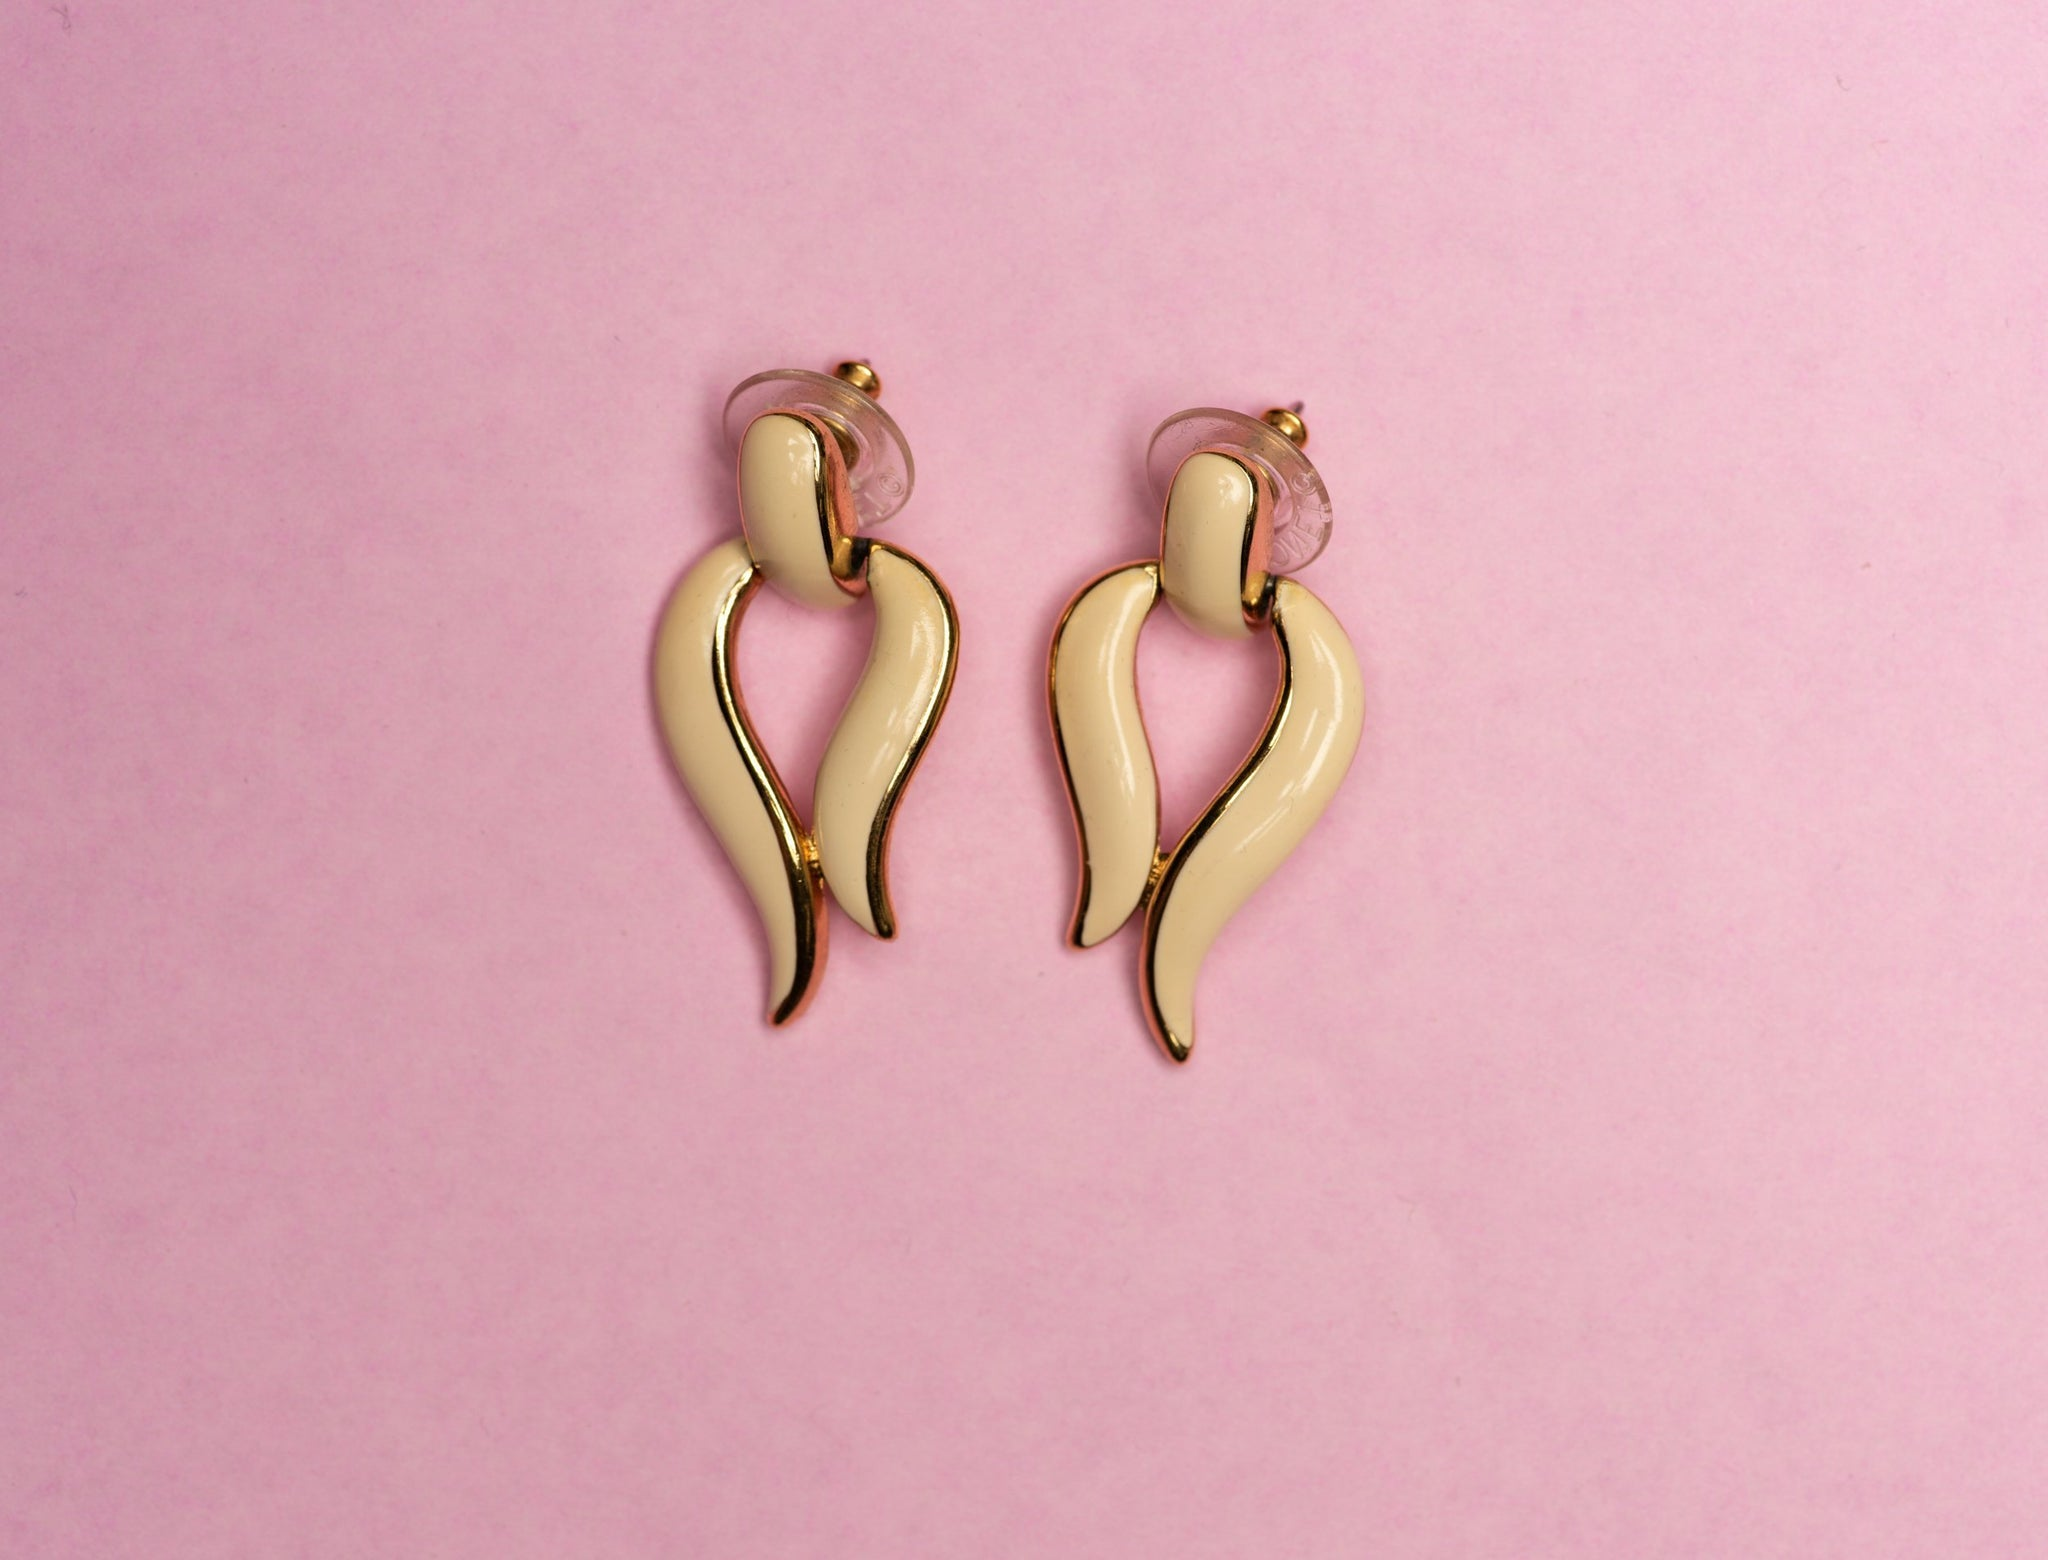 Vintage Gold + Creme Door Knocker Earrings - Closed Caption